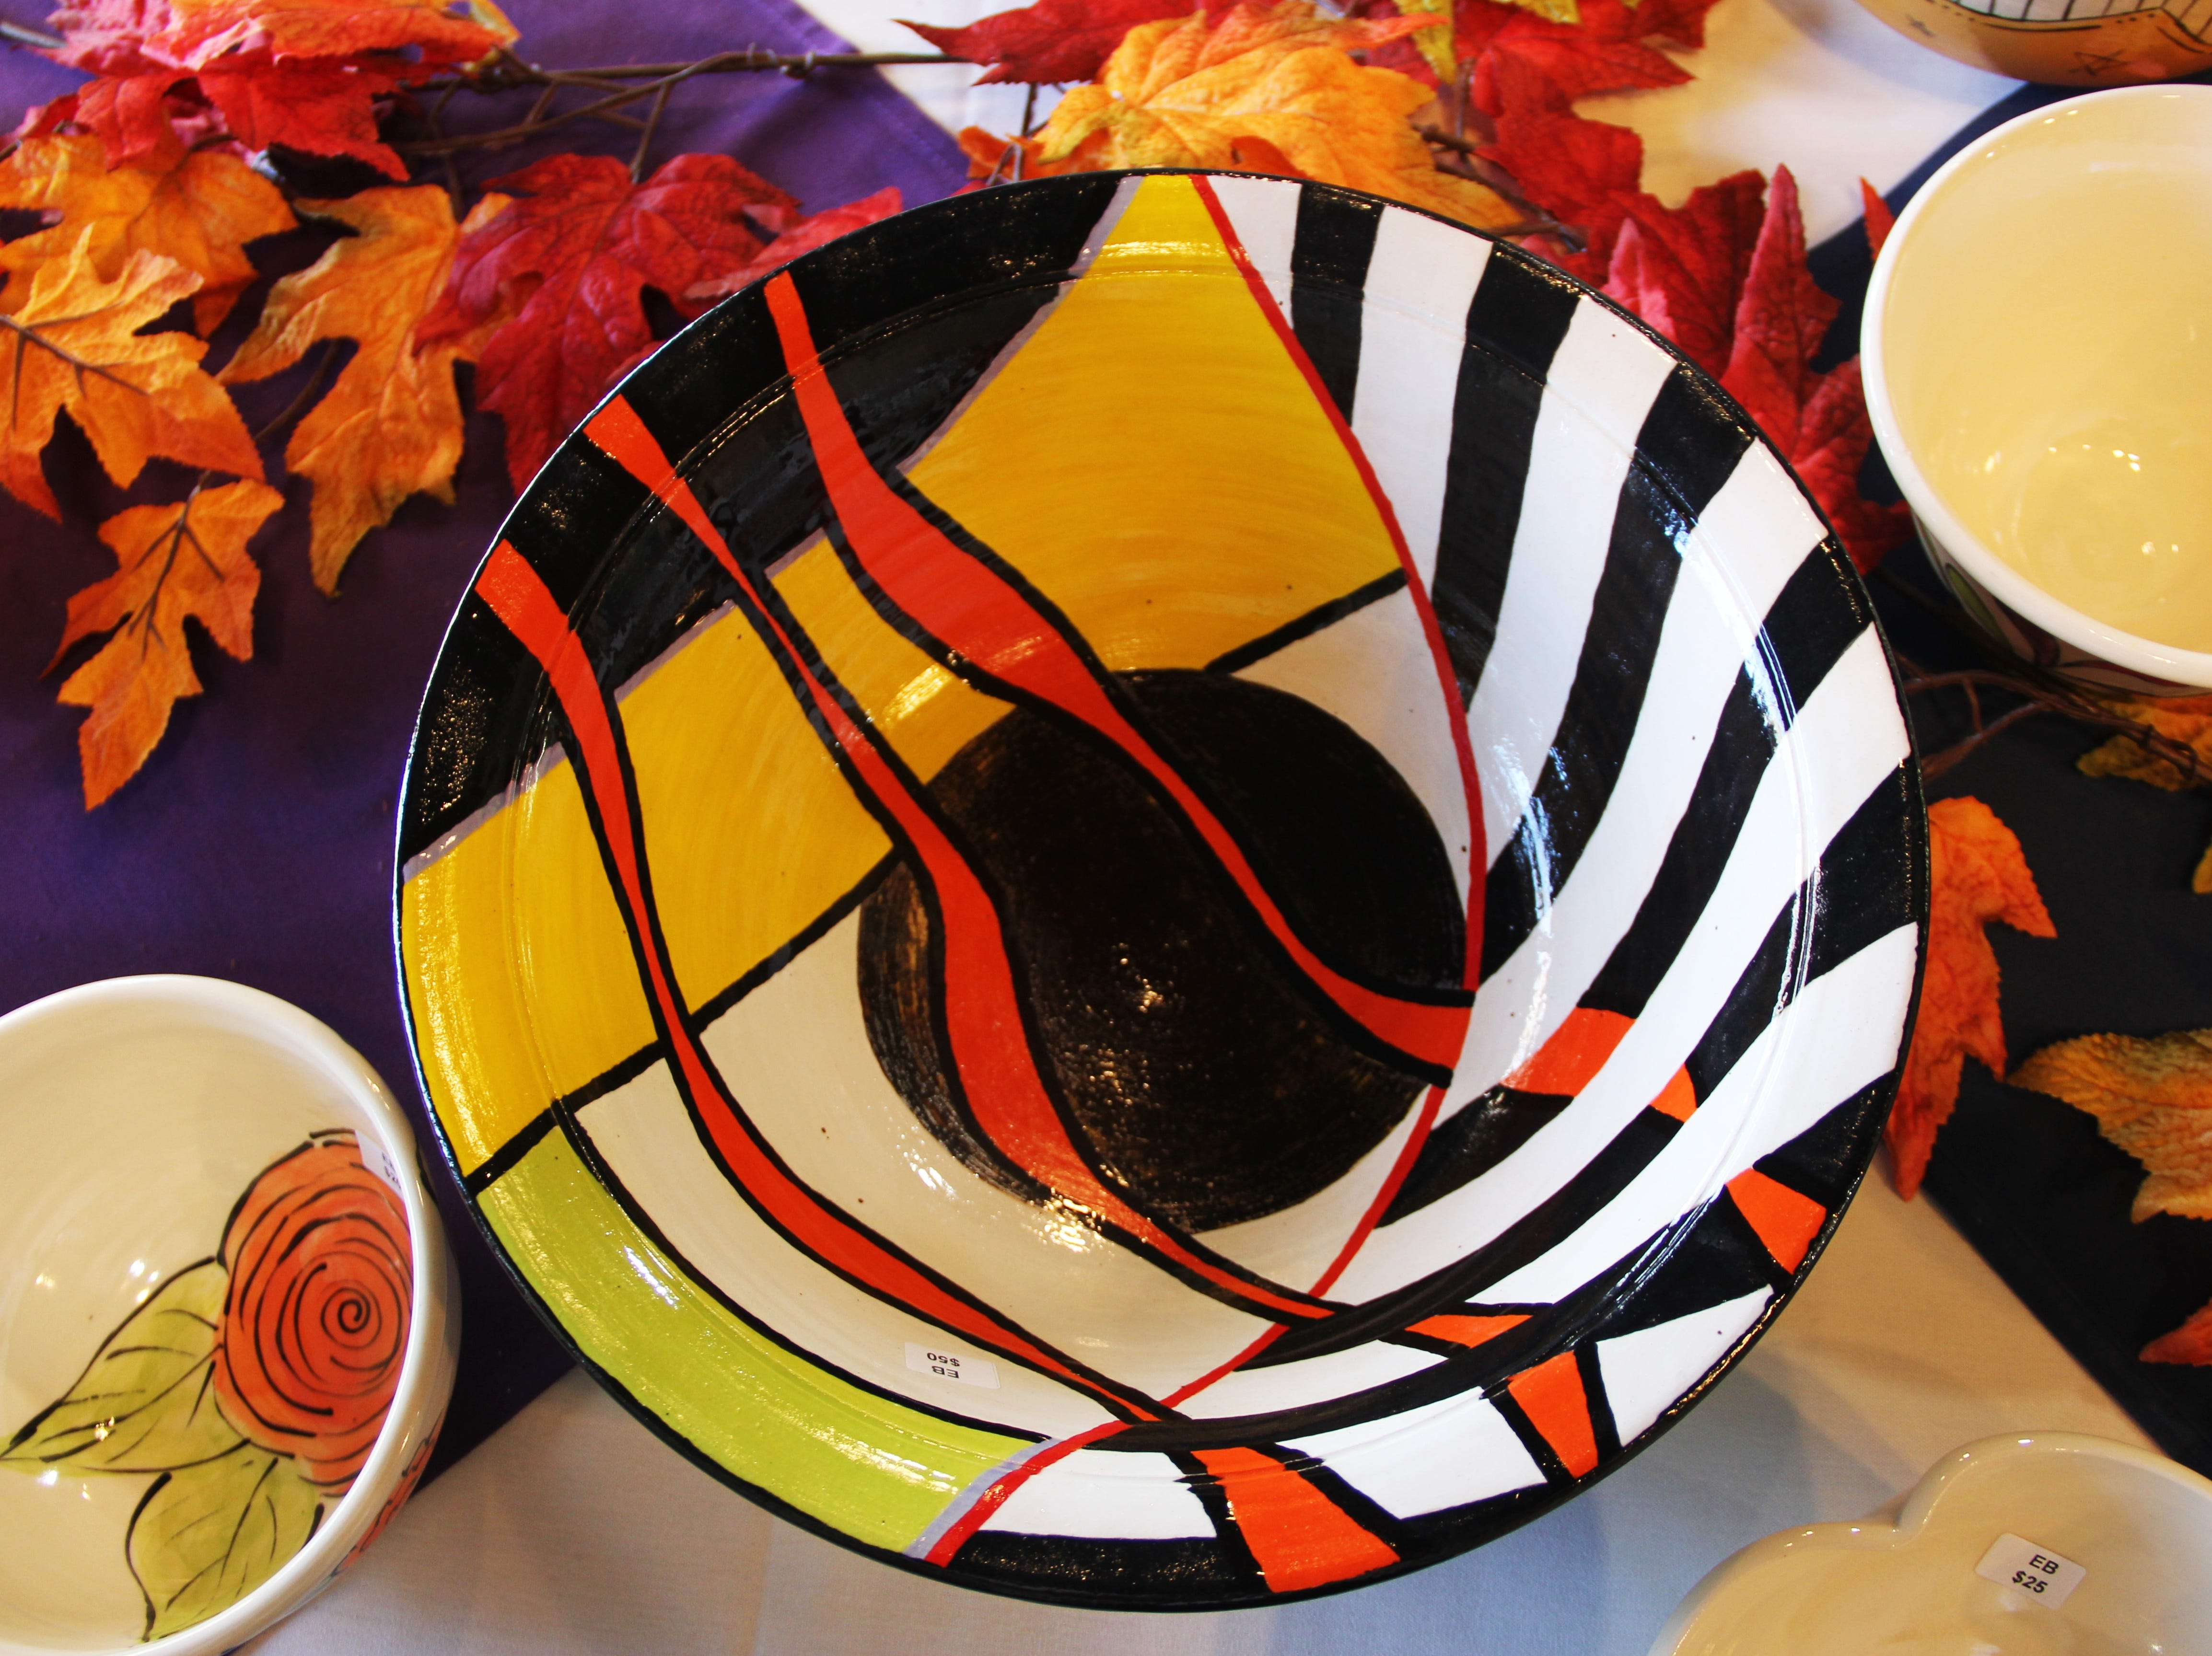 One of the bowls for sale at the Willamette Art Center's Empty Bowls fundraiser on Saturday, Nov. 17. 100 percent of profits go to the Marion-Polk Food Share.